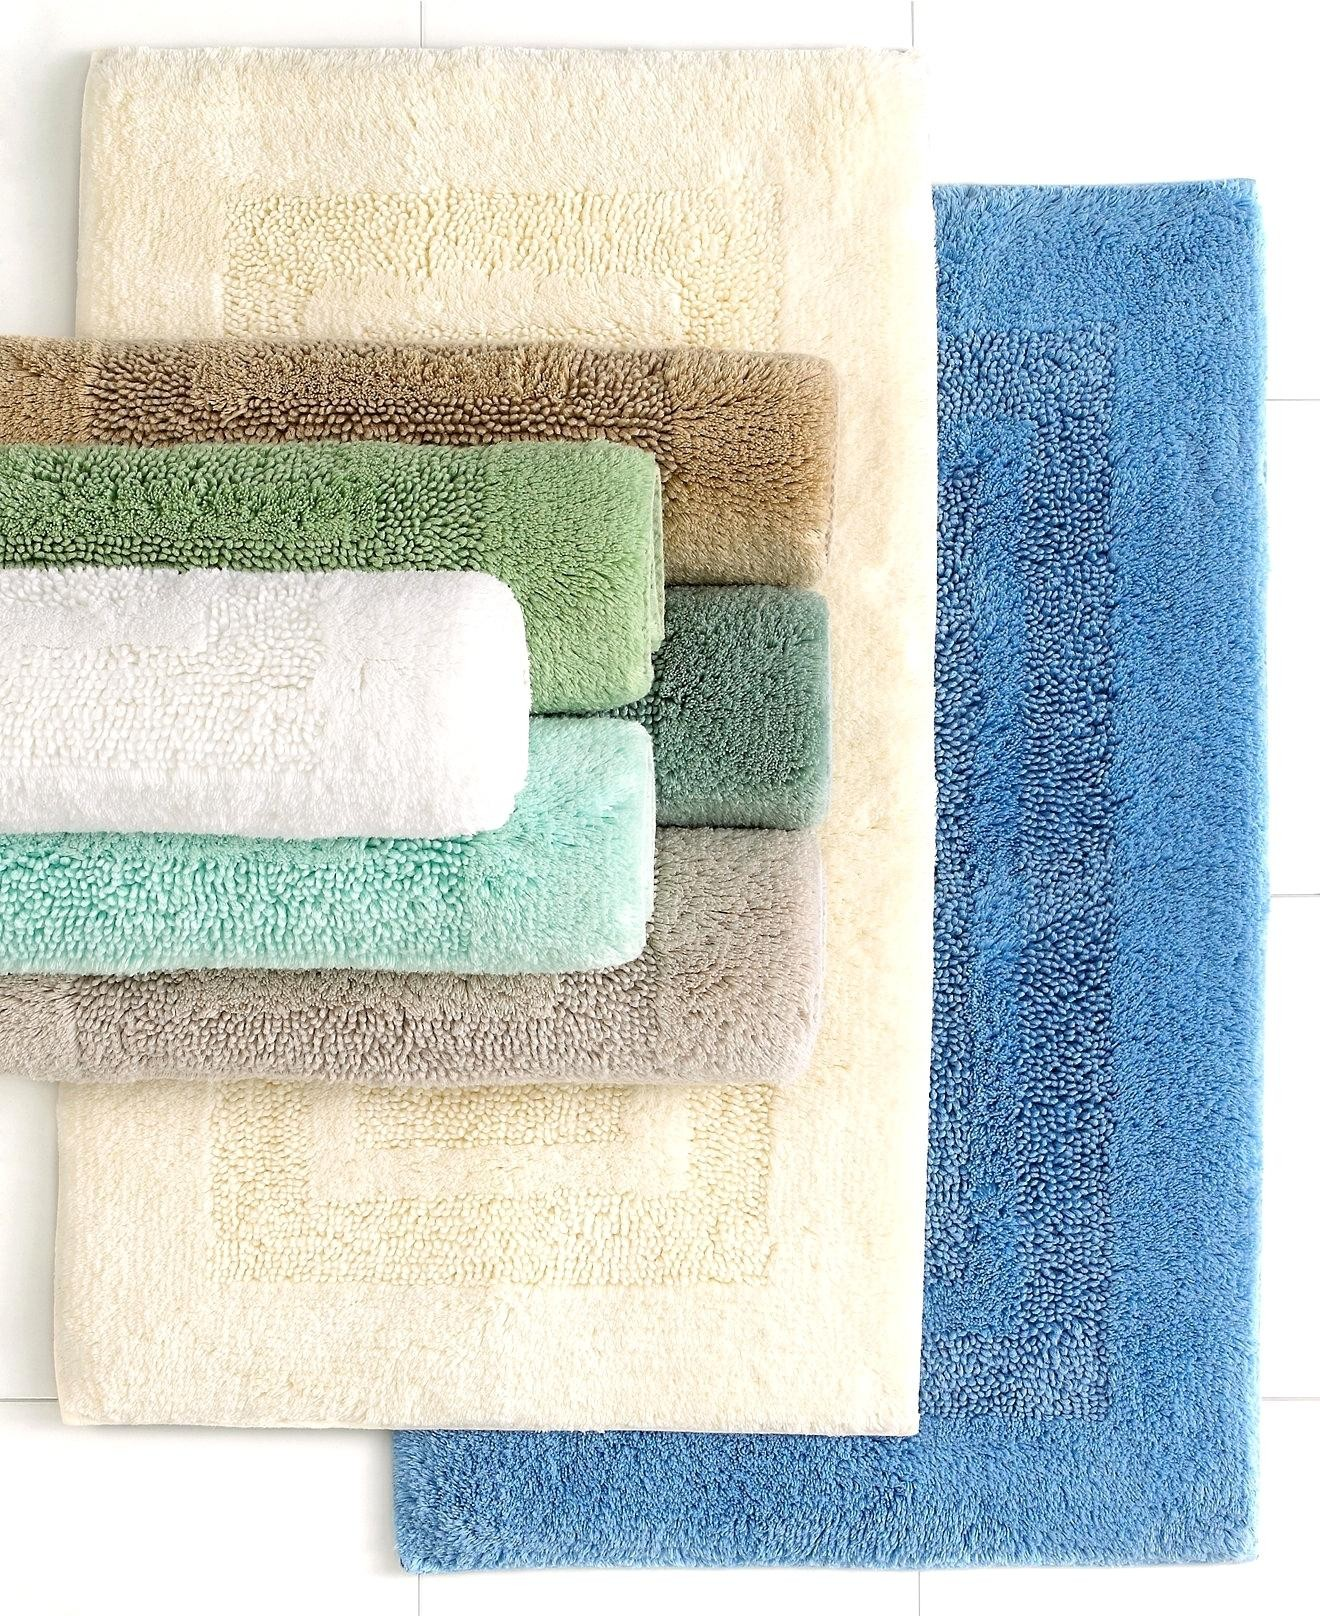 Mint Green Bathroom Rugs Stylish Overwhelming Turquoise Blue Bath Rugs Living Room Rugs Blue In Pattern